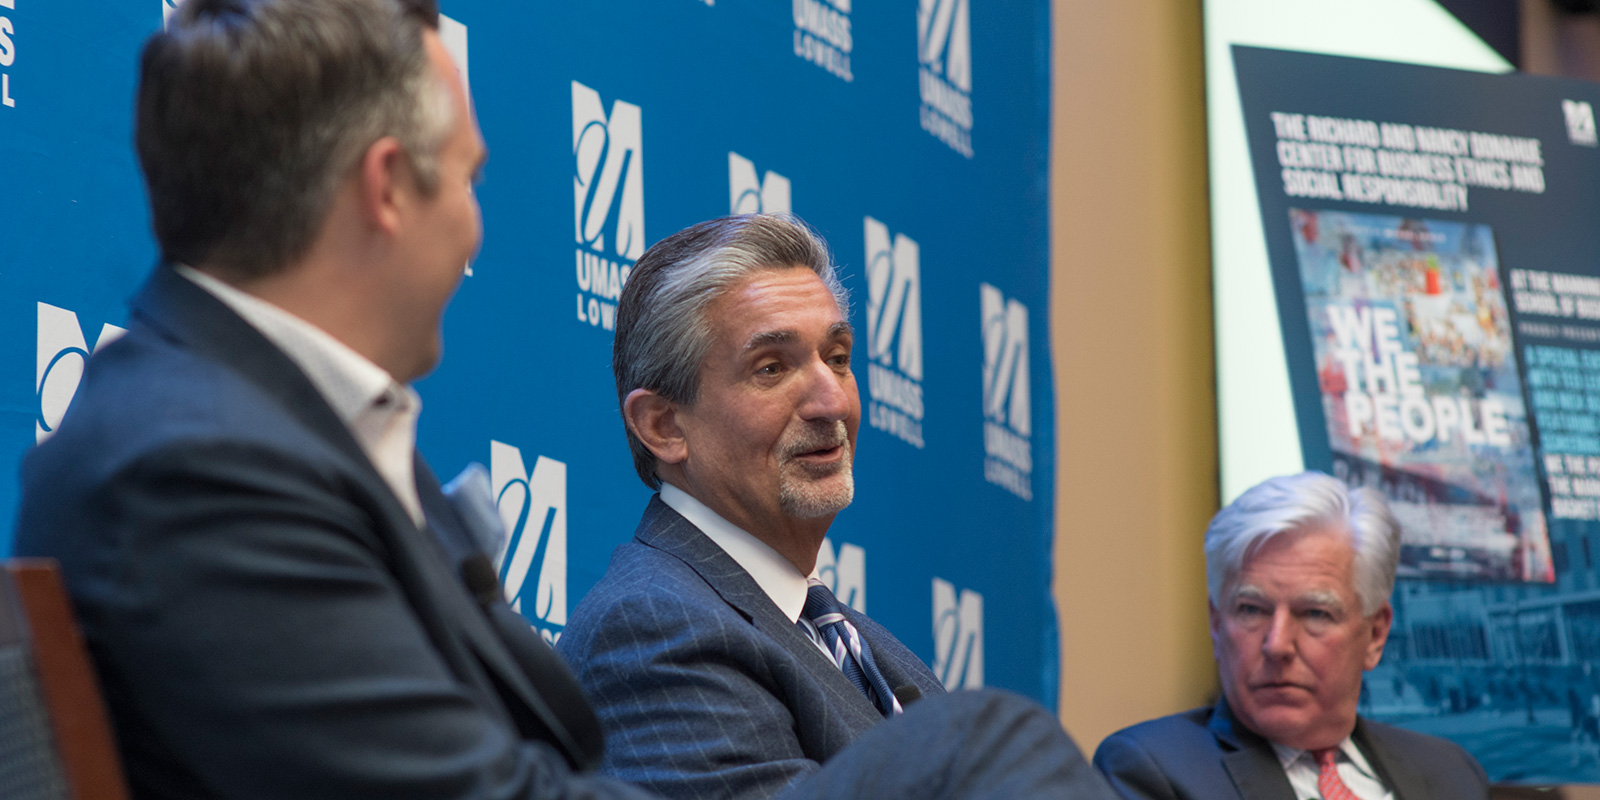 """Market Basket"" producers Nick Buzzell and Ted Leonsis, with UMass President Marty Meehan"